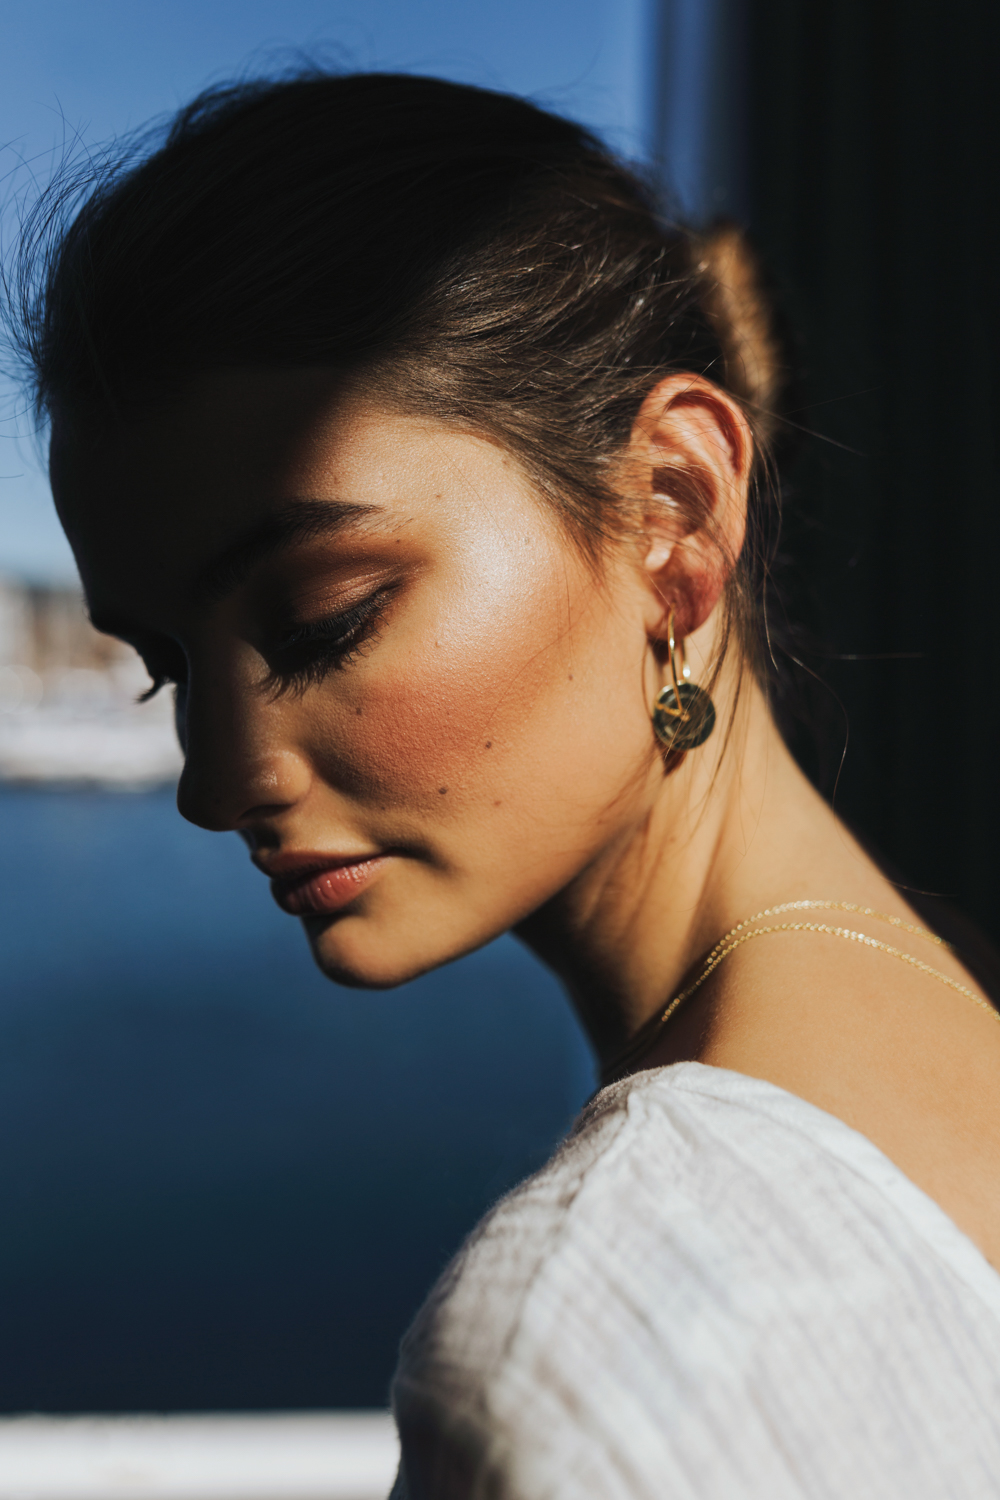 Model poses in sun and shadow with gold jewellery.